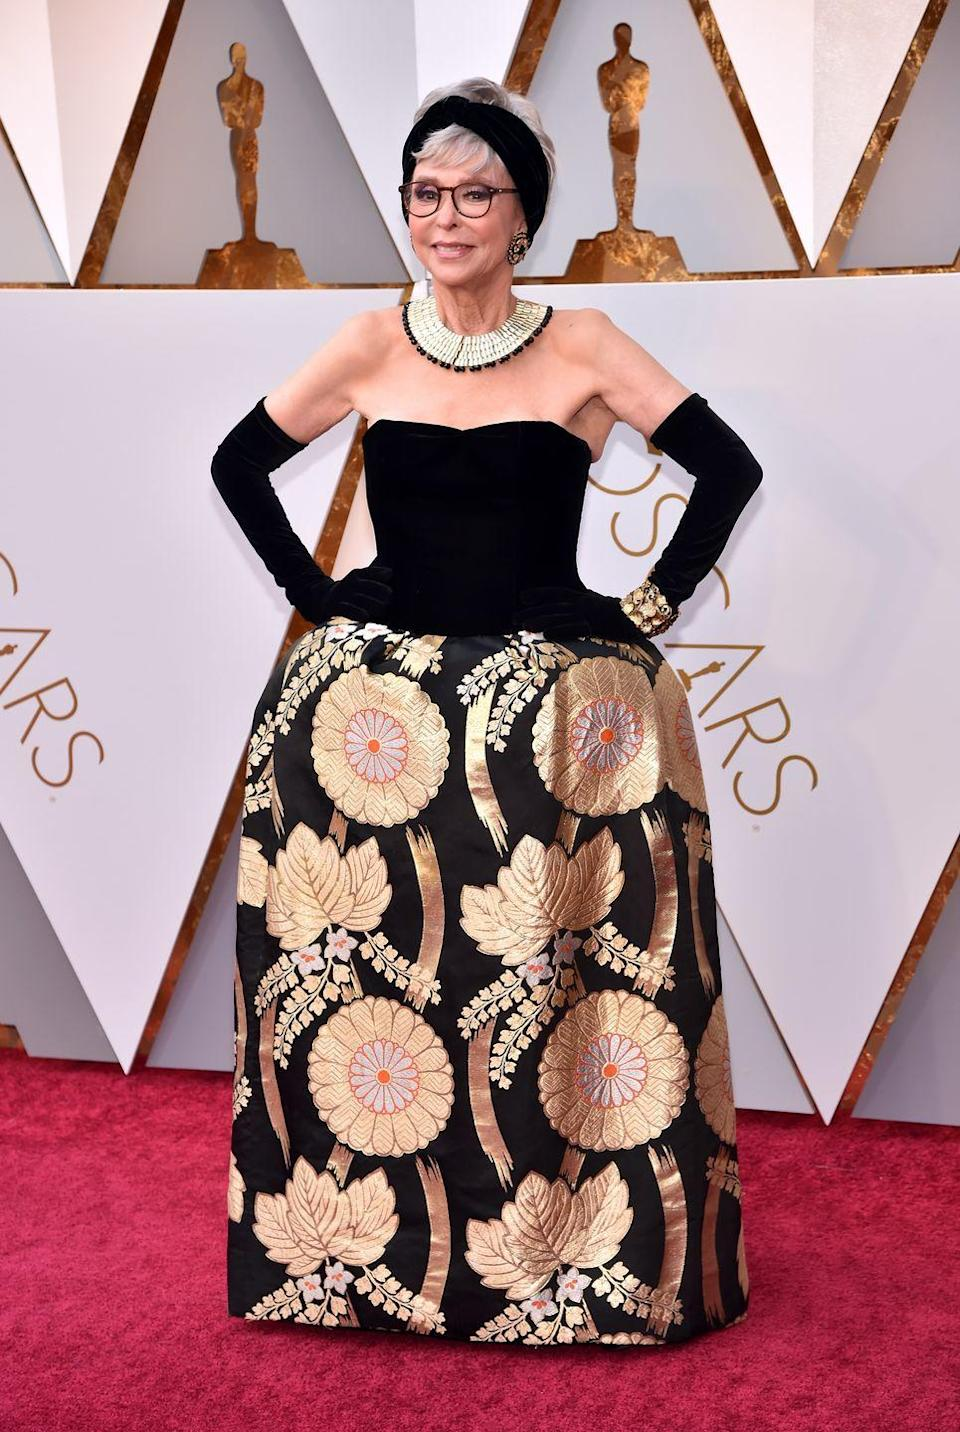 <p>Rita Moreno re-wearing the gown she won Best Supporting Actress in at the Oscars in 1962.</p>